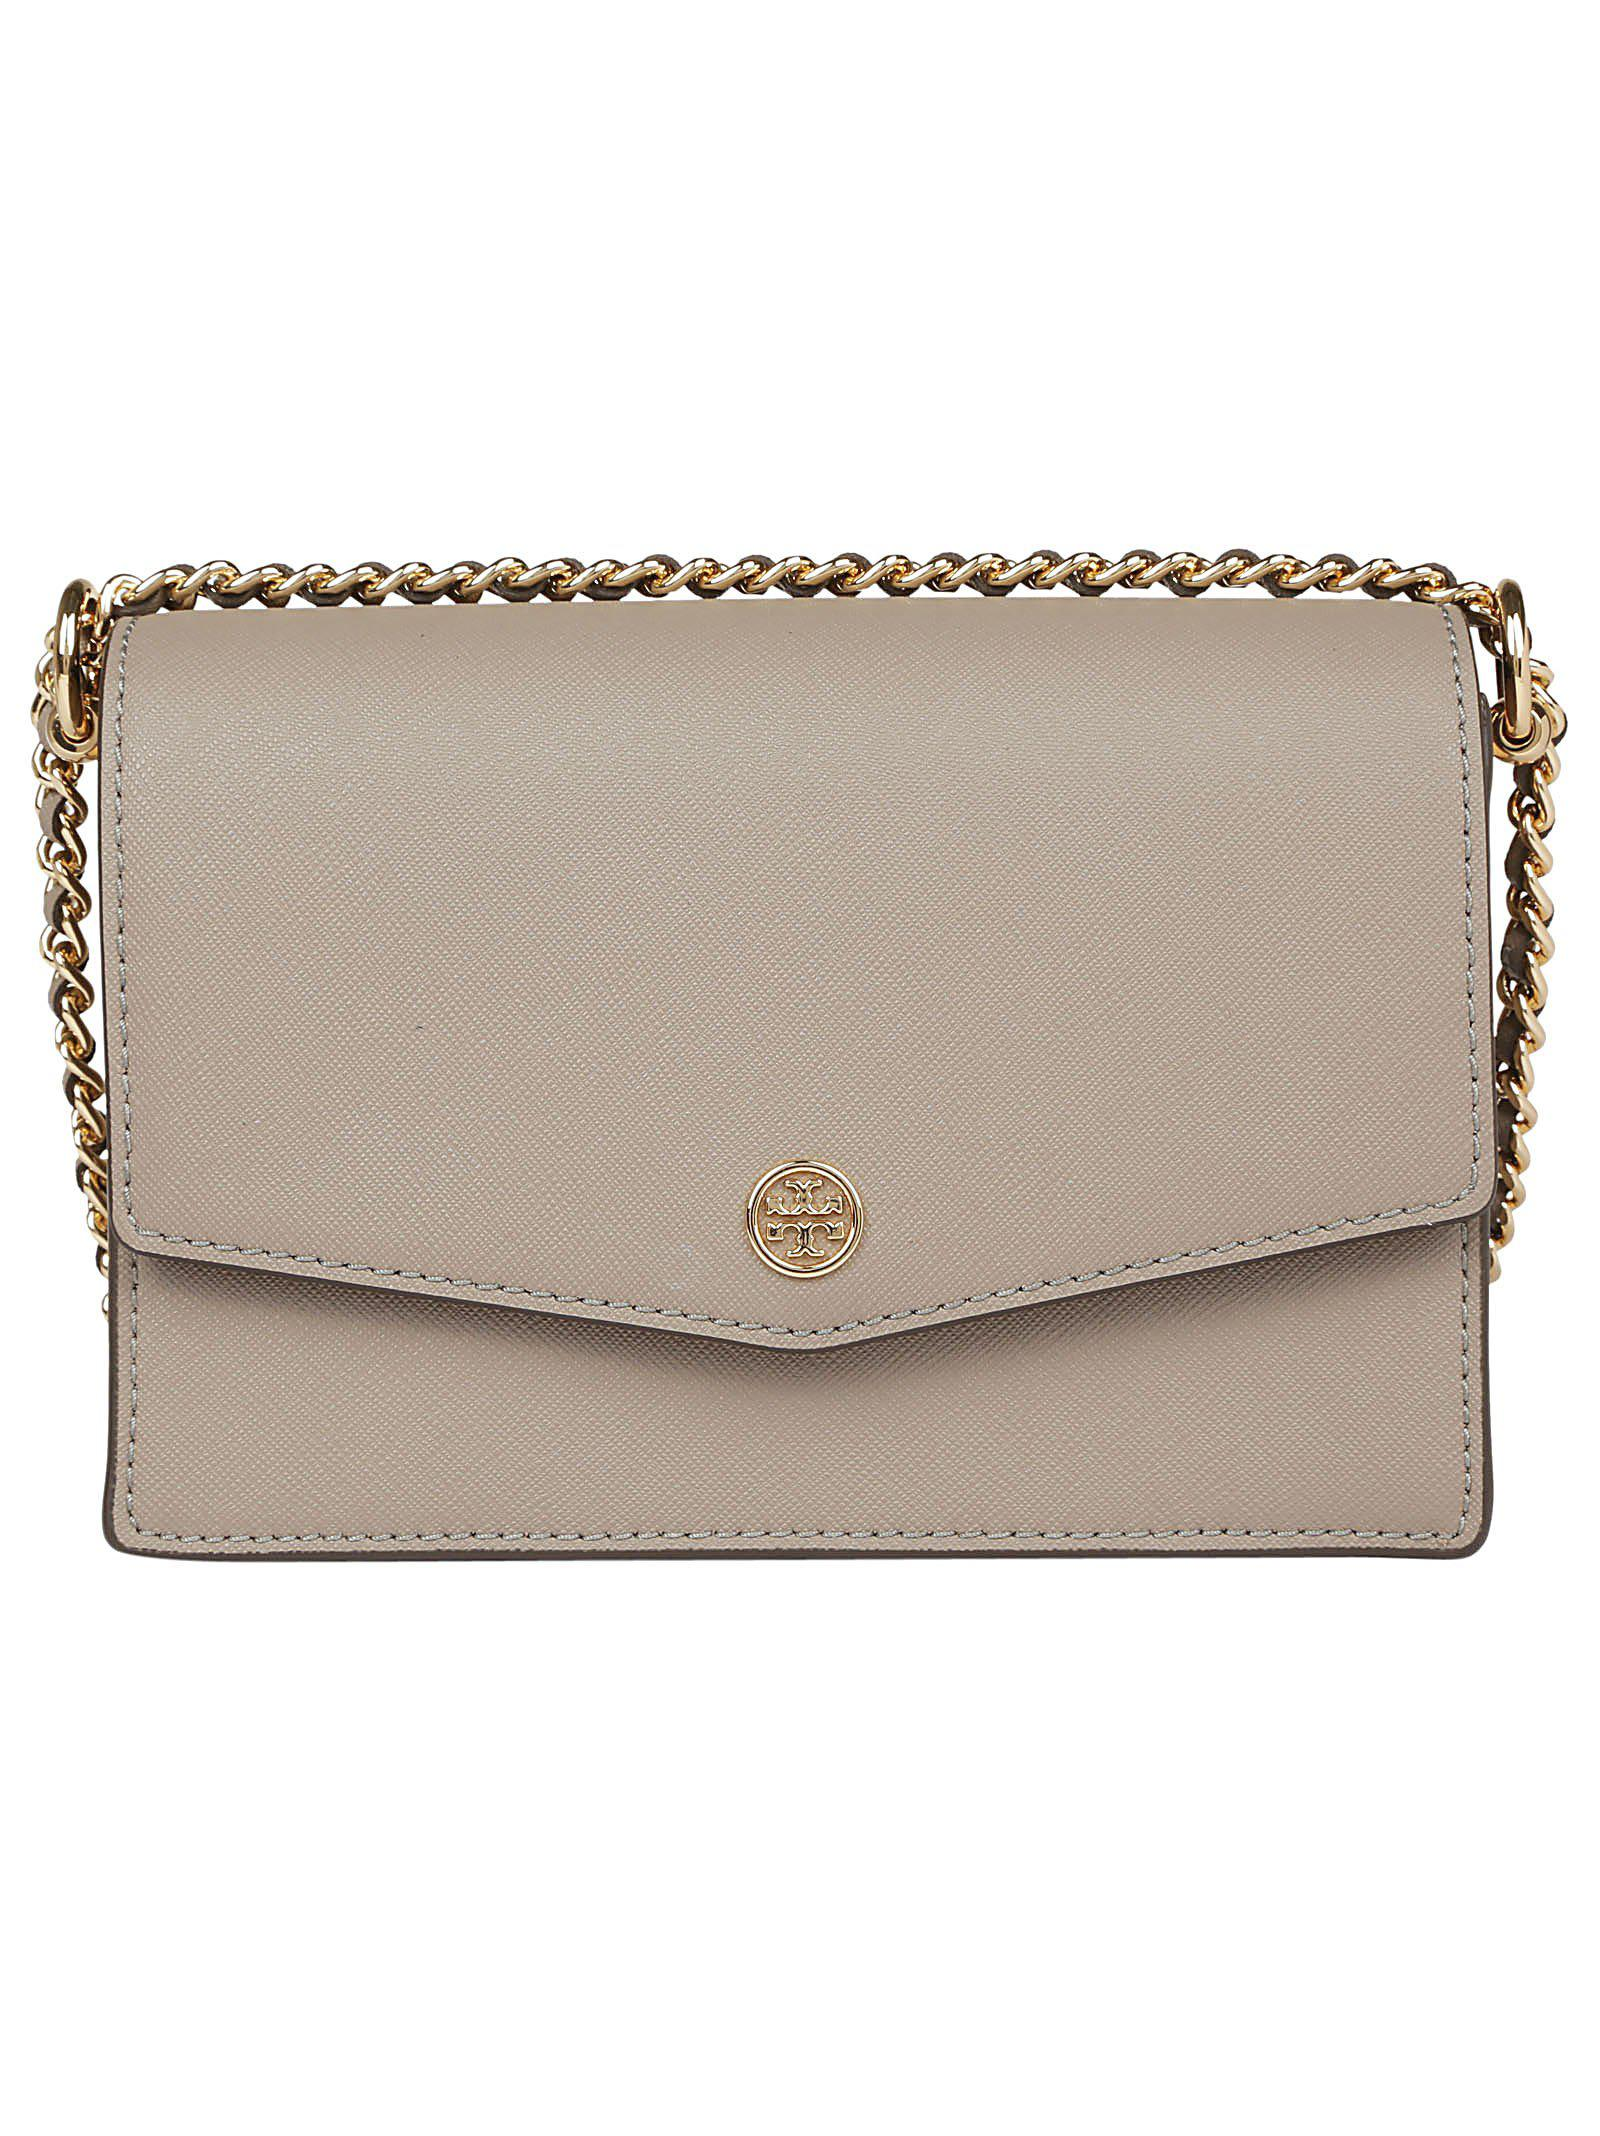 68dbab31b850 Tory Burch Robinson Convertible Mini Square Shoulder Bag in Gray - Lyst